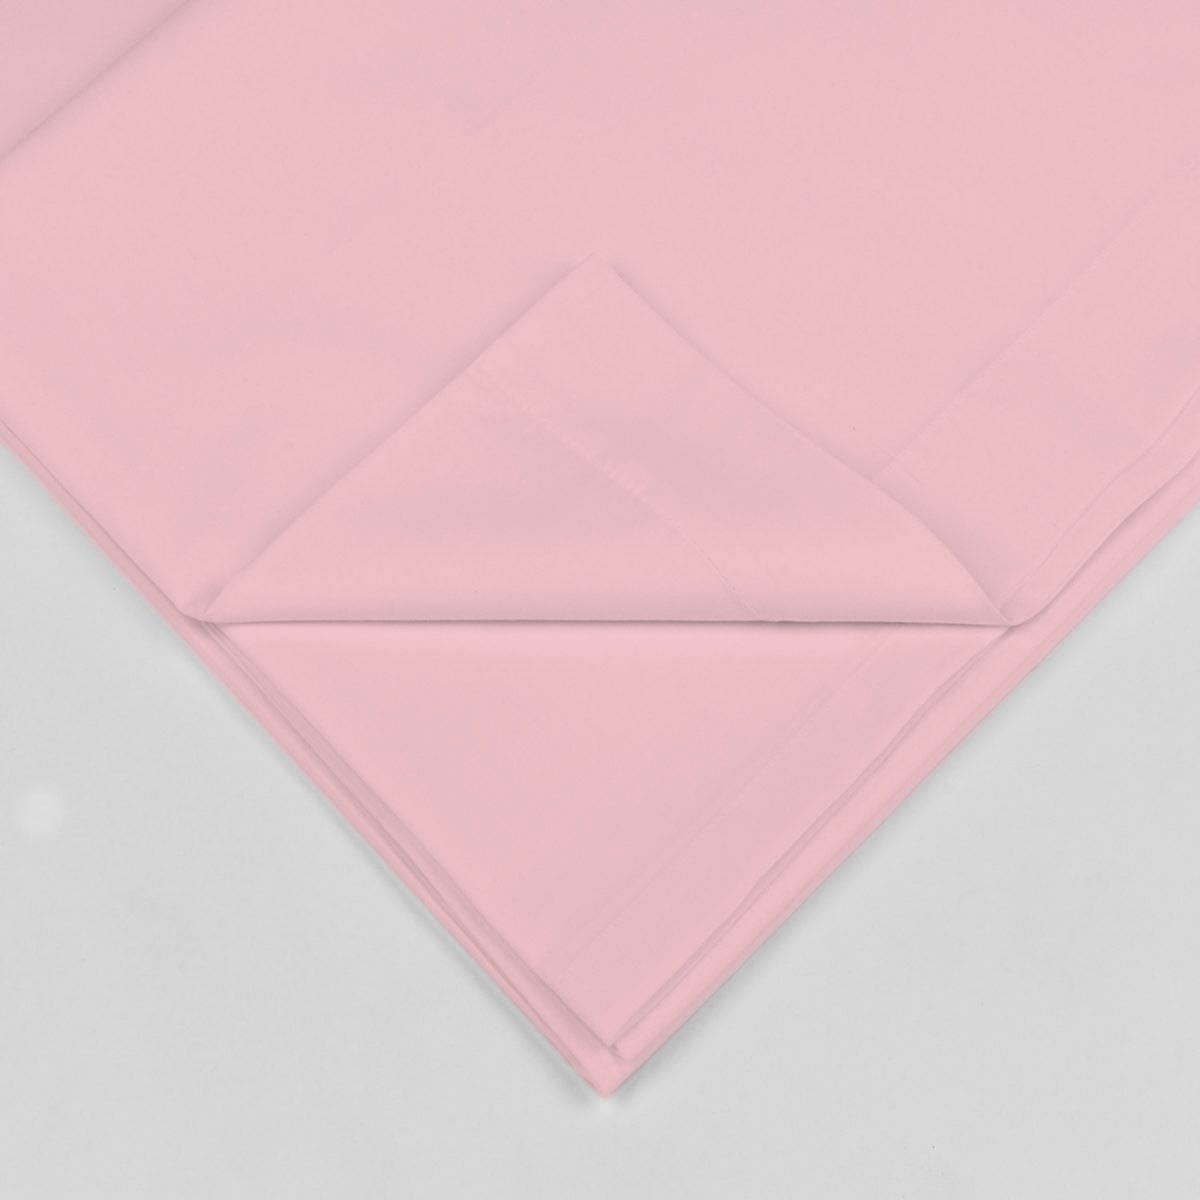 So Soft Percale Lençol Candy Catherine Lansfield